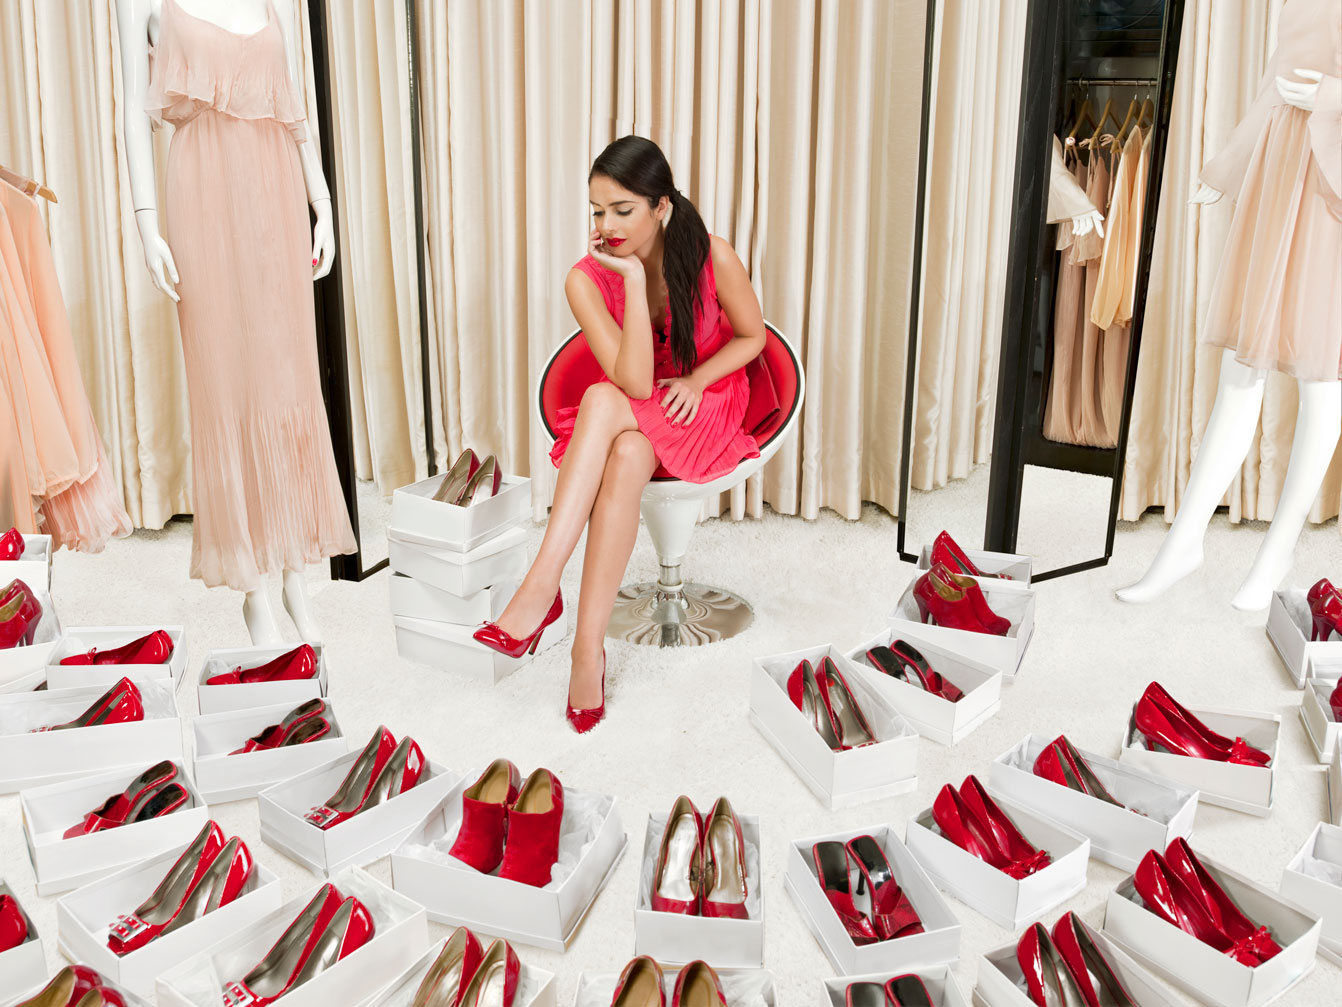 Girl Goes Shopping for Red Heels